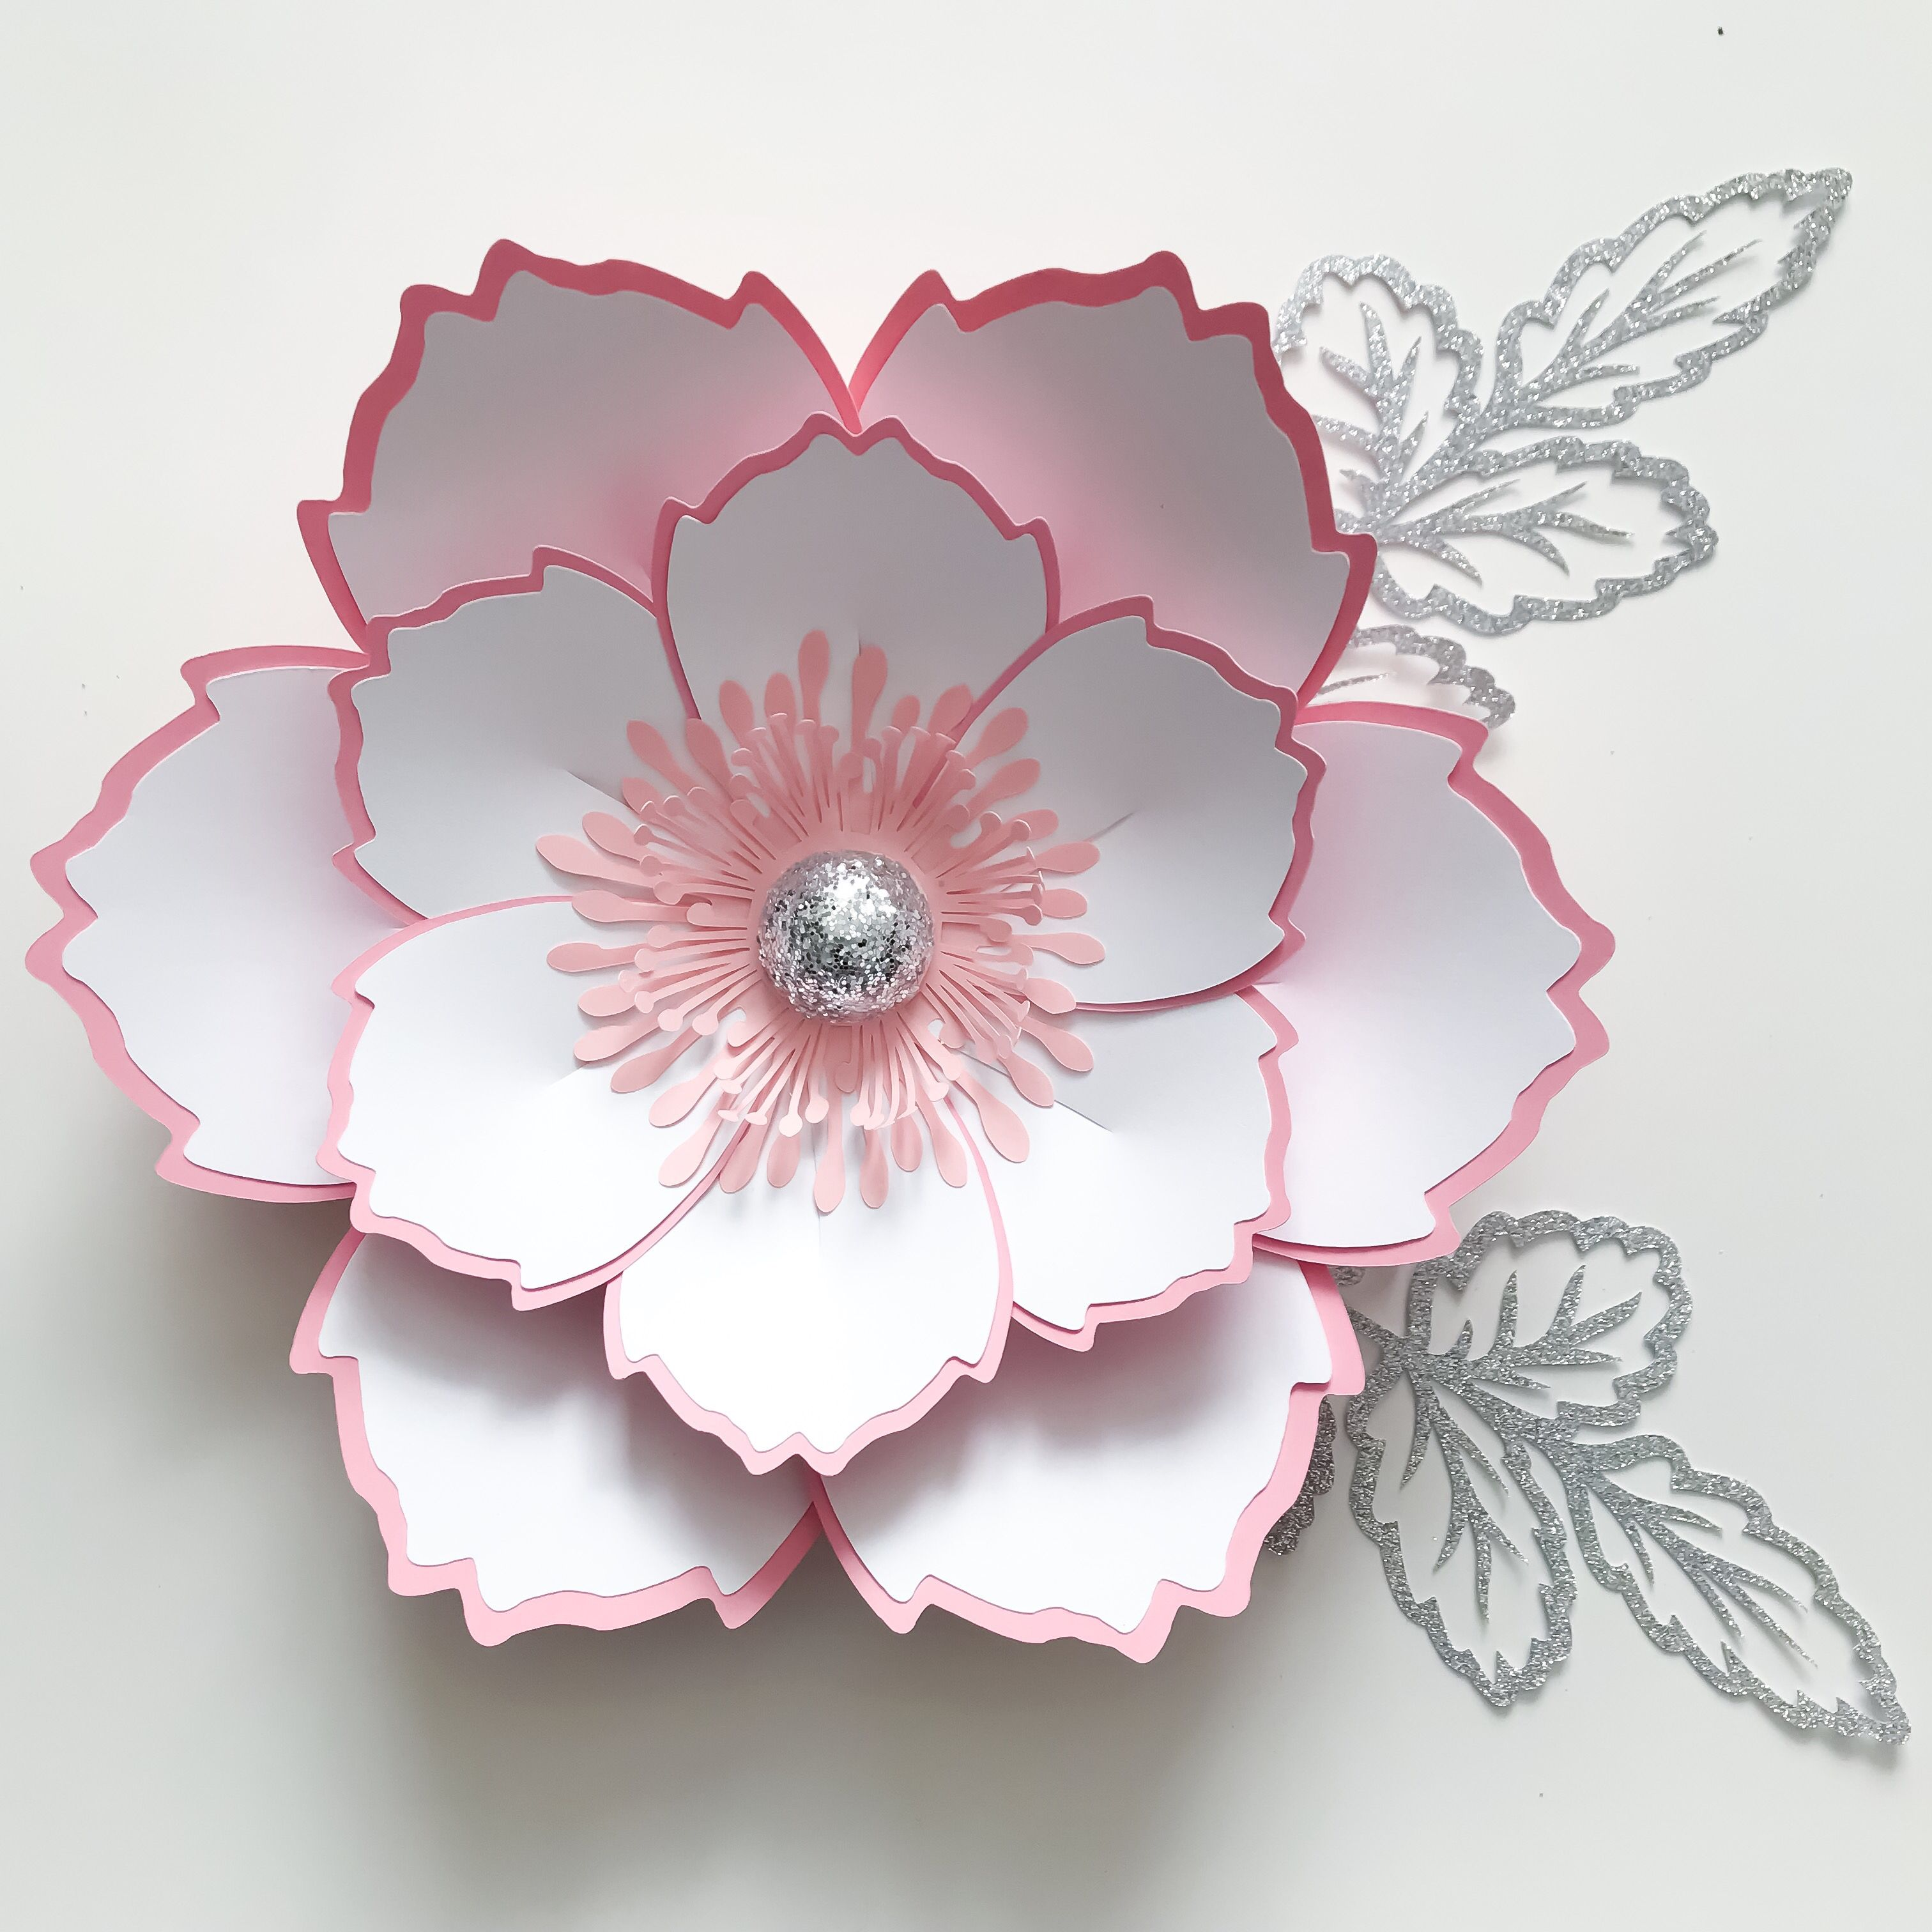 Here Comes Petal 140 In Medium Size 15 16 Make Your Own Paper